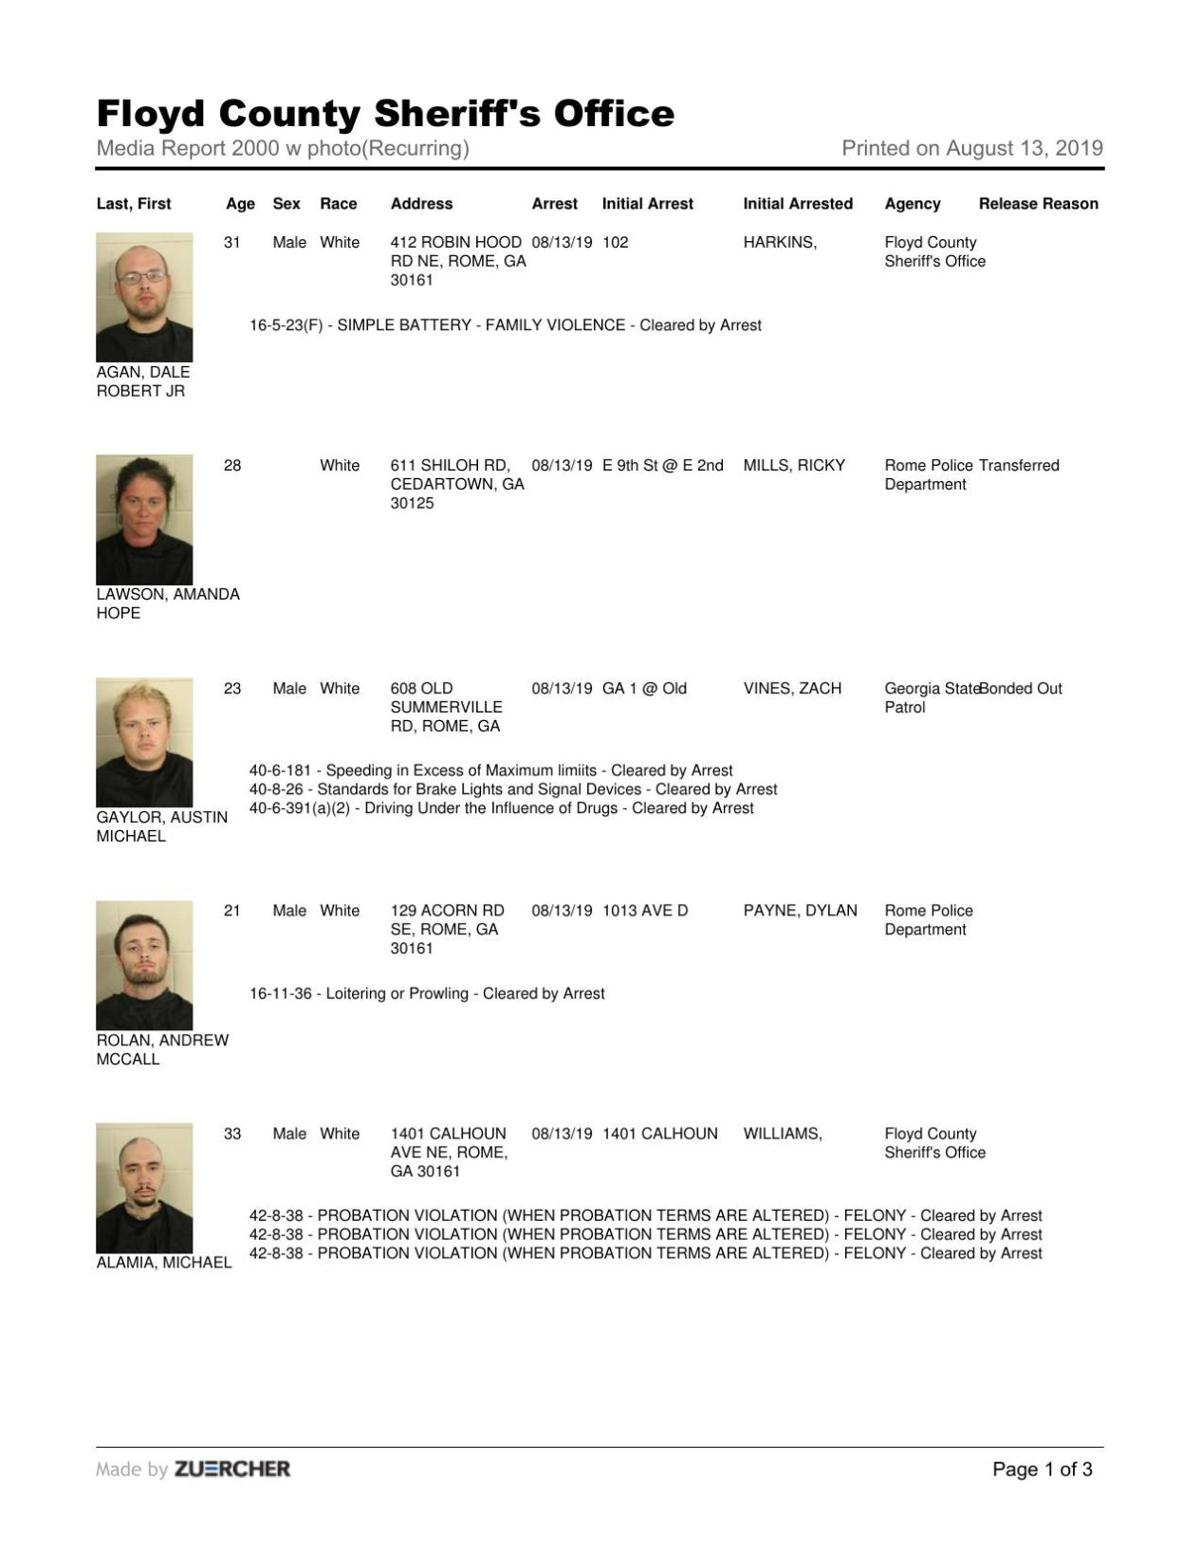 Floyd County Jail report for Tuesday, Aug. 13